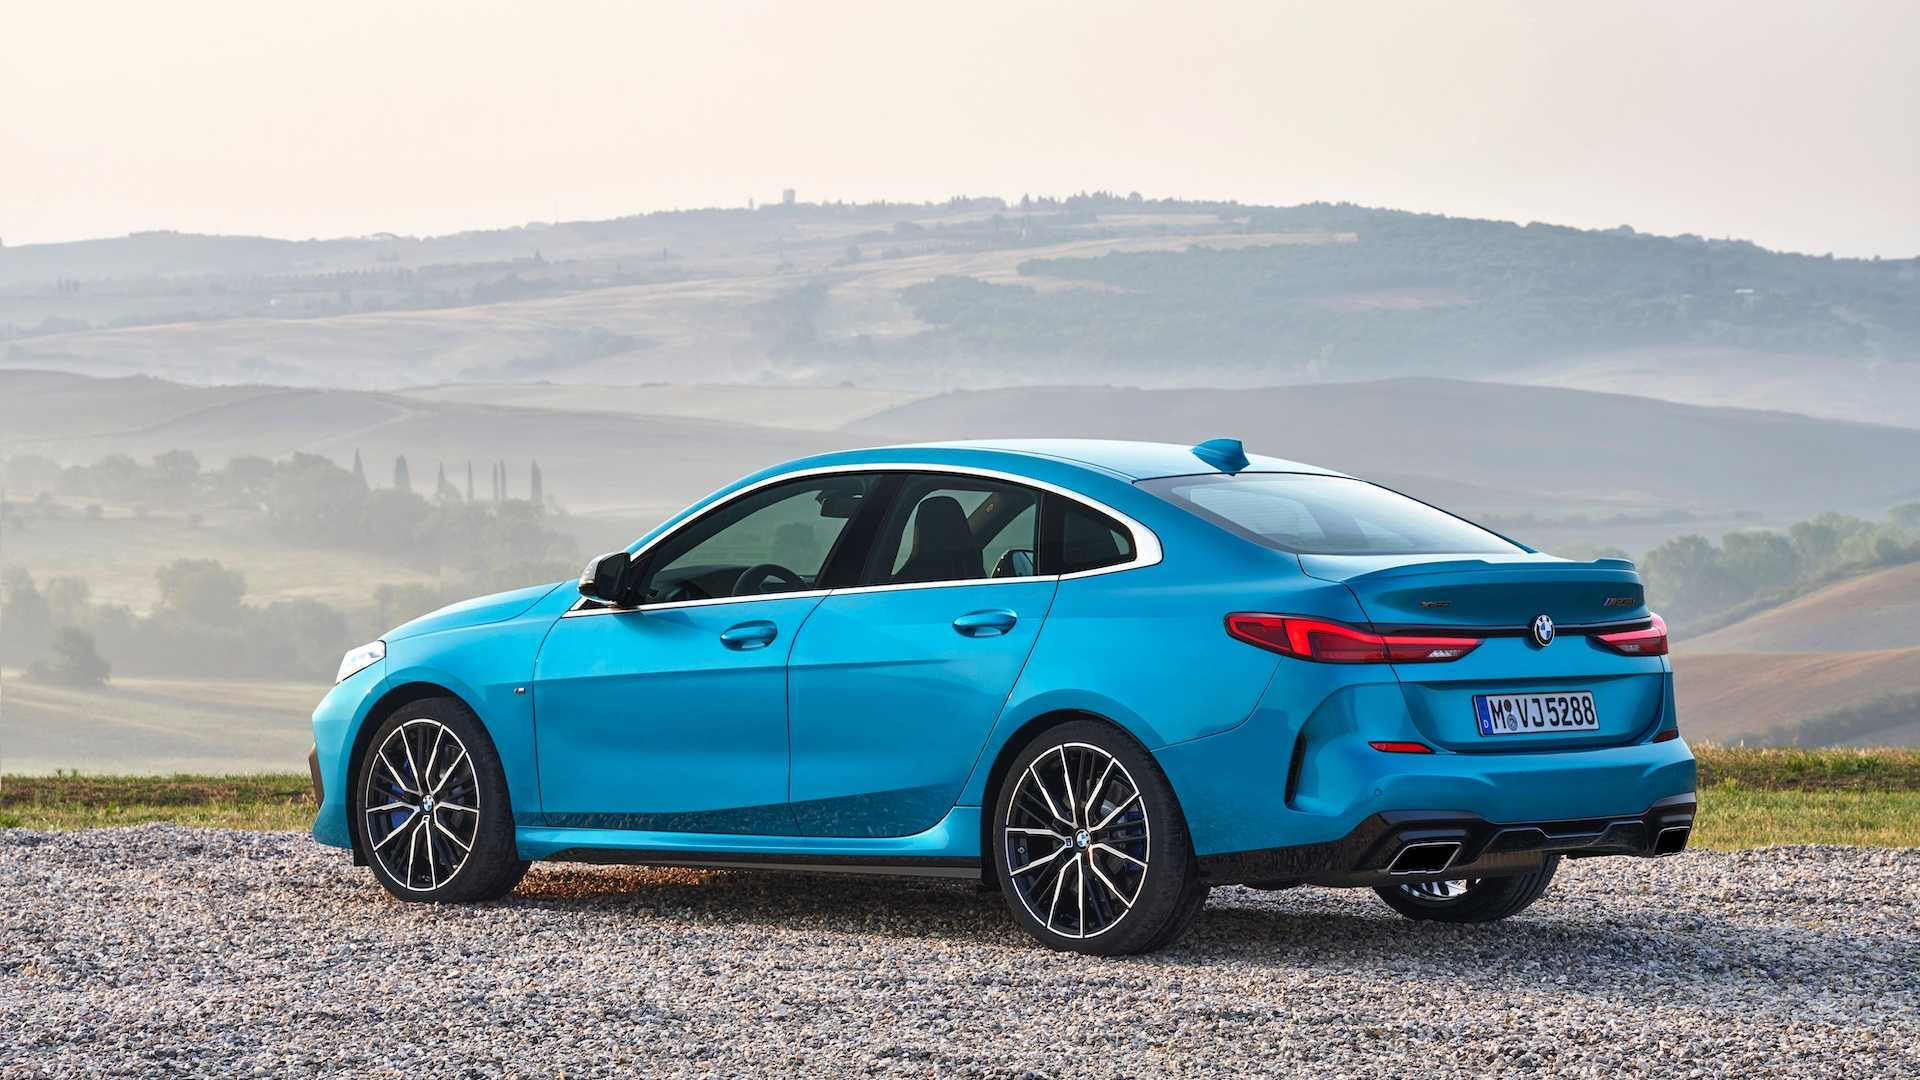 2020-bmw-2-series-gran-coupe-72